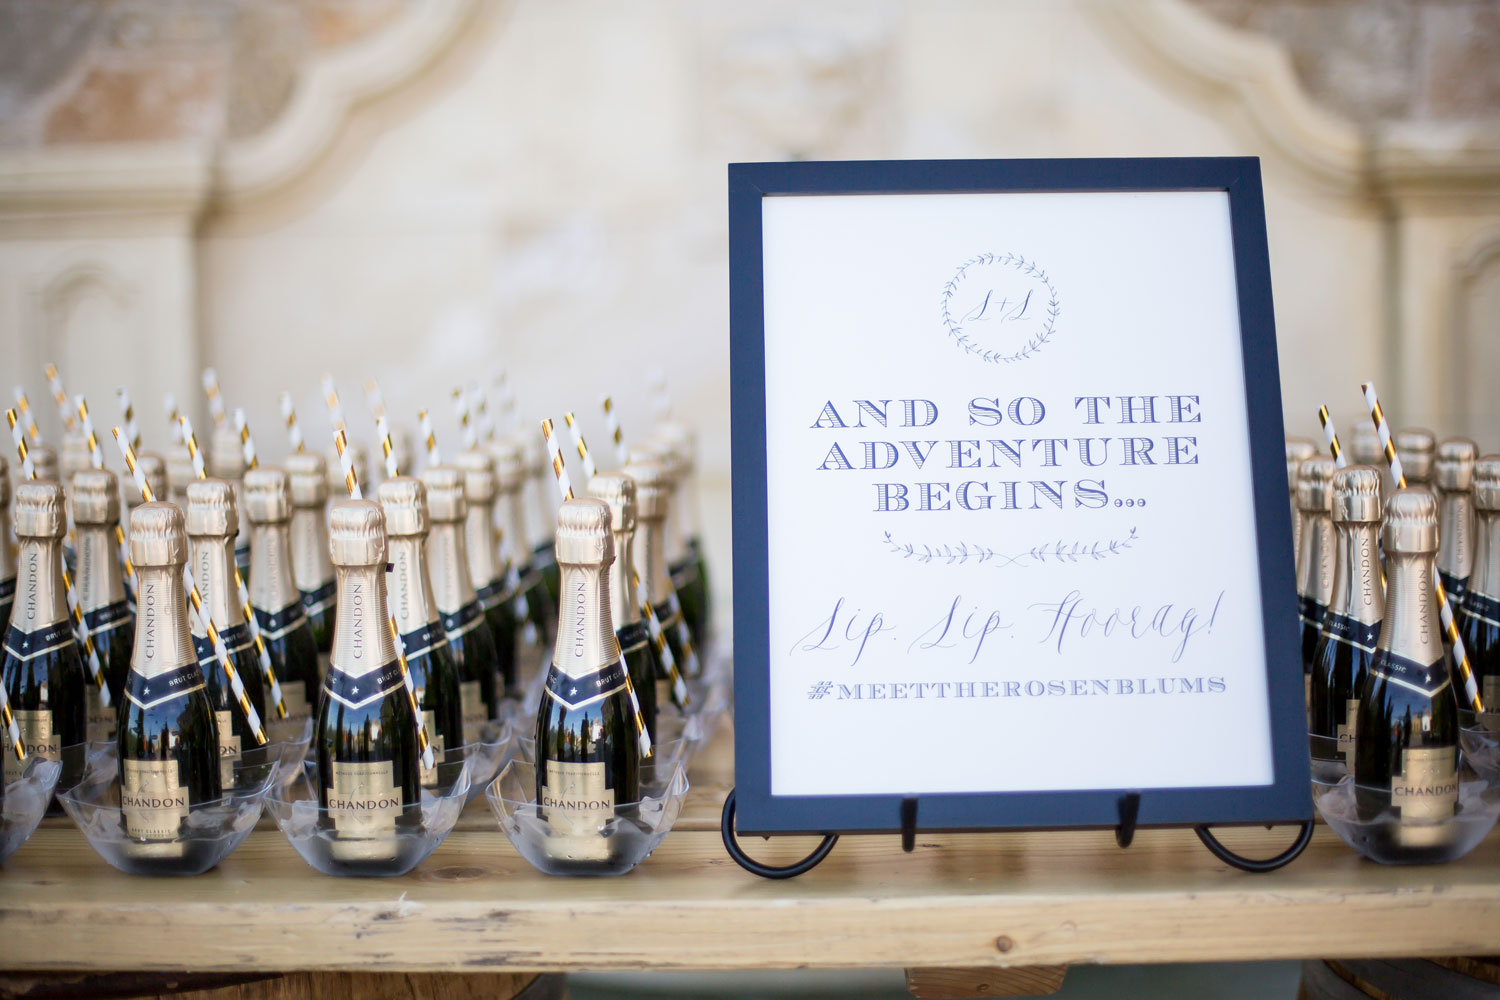 Champagne glasses escort cards with wedding hashtag